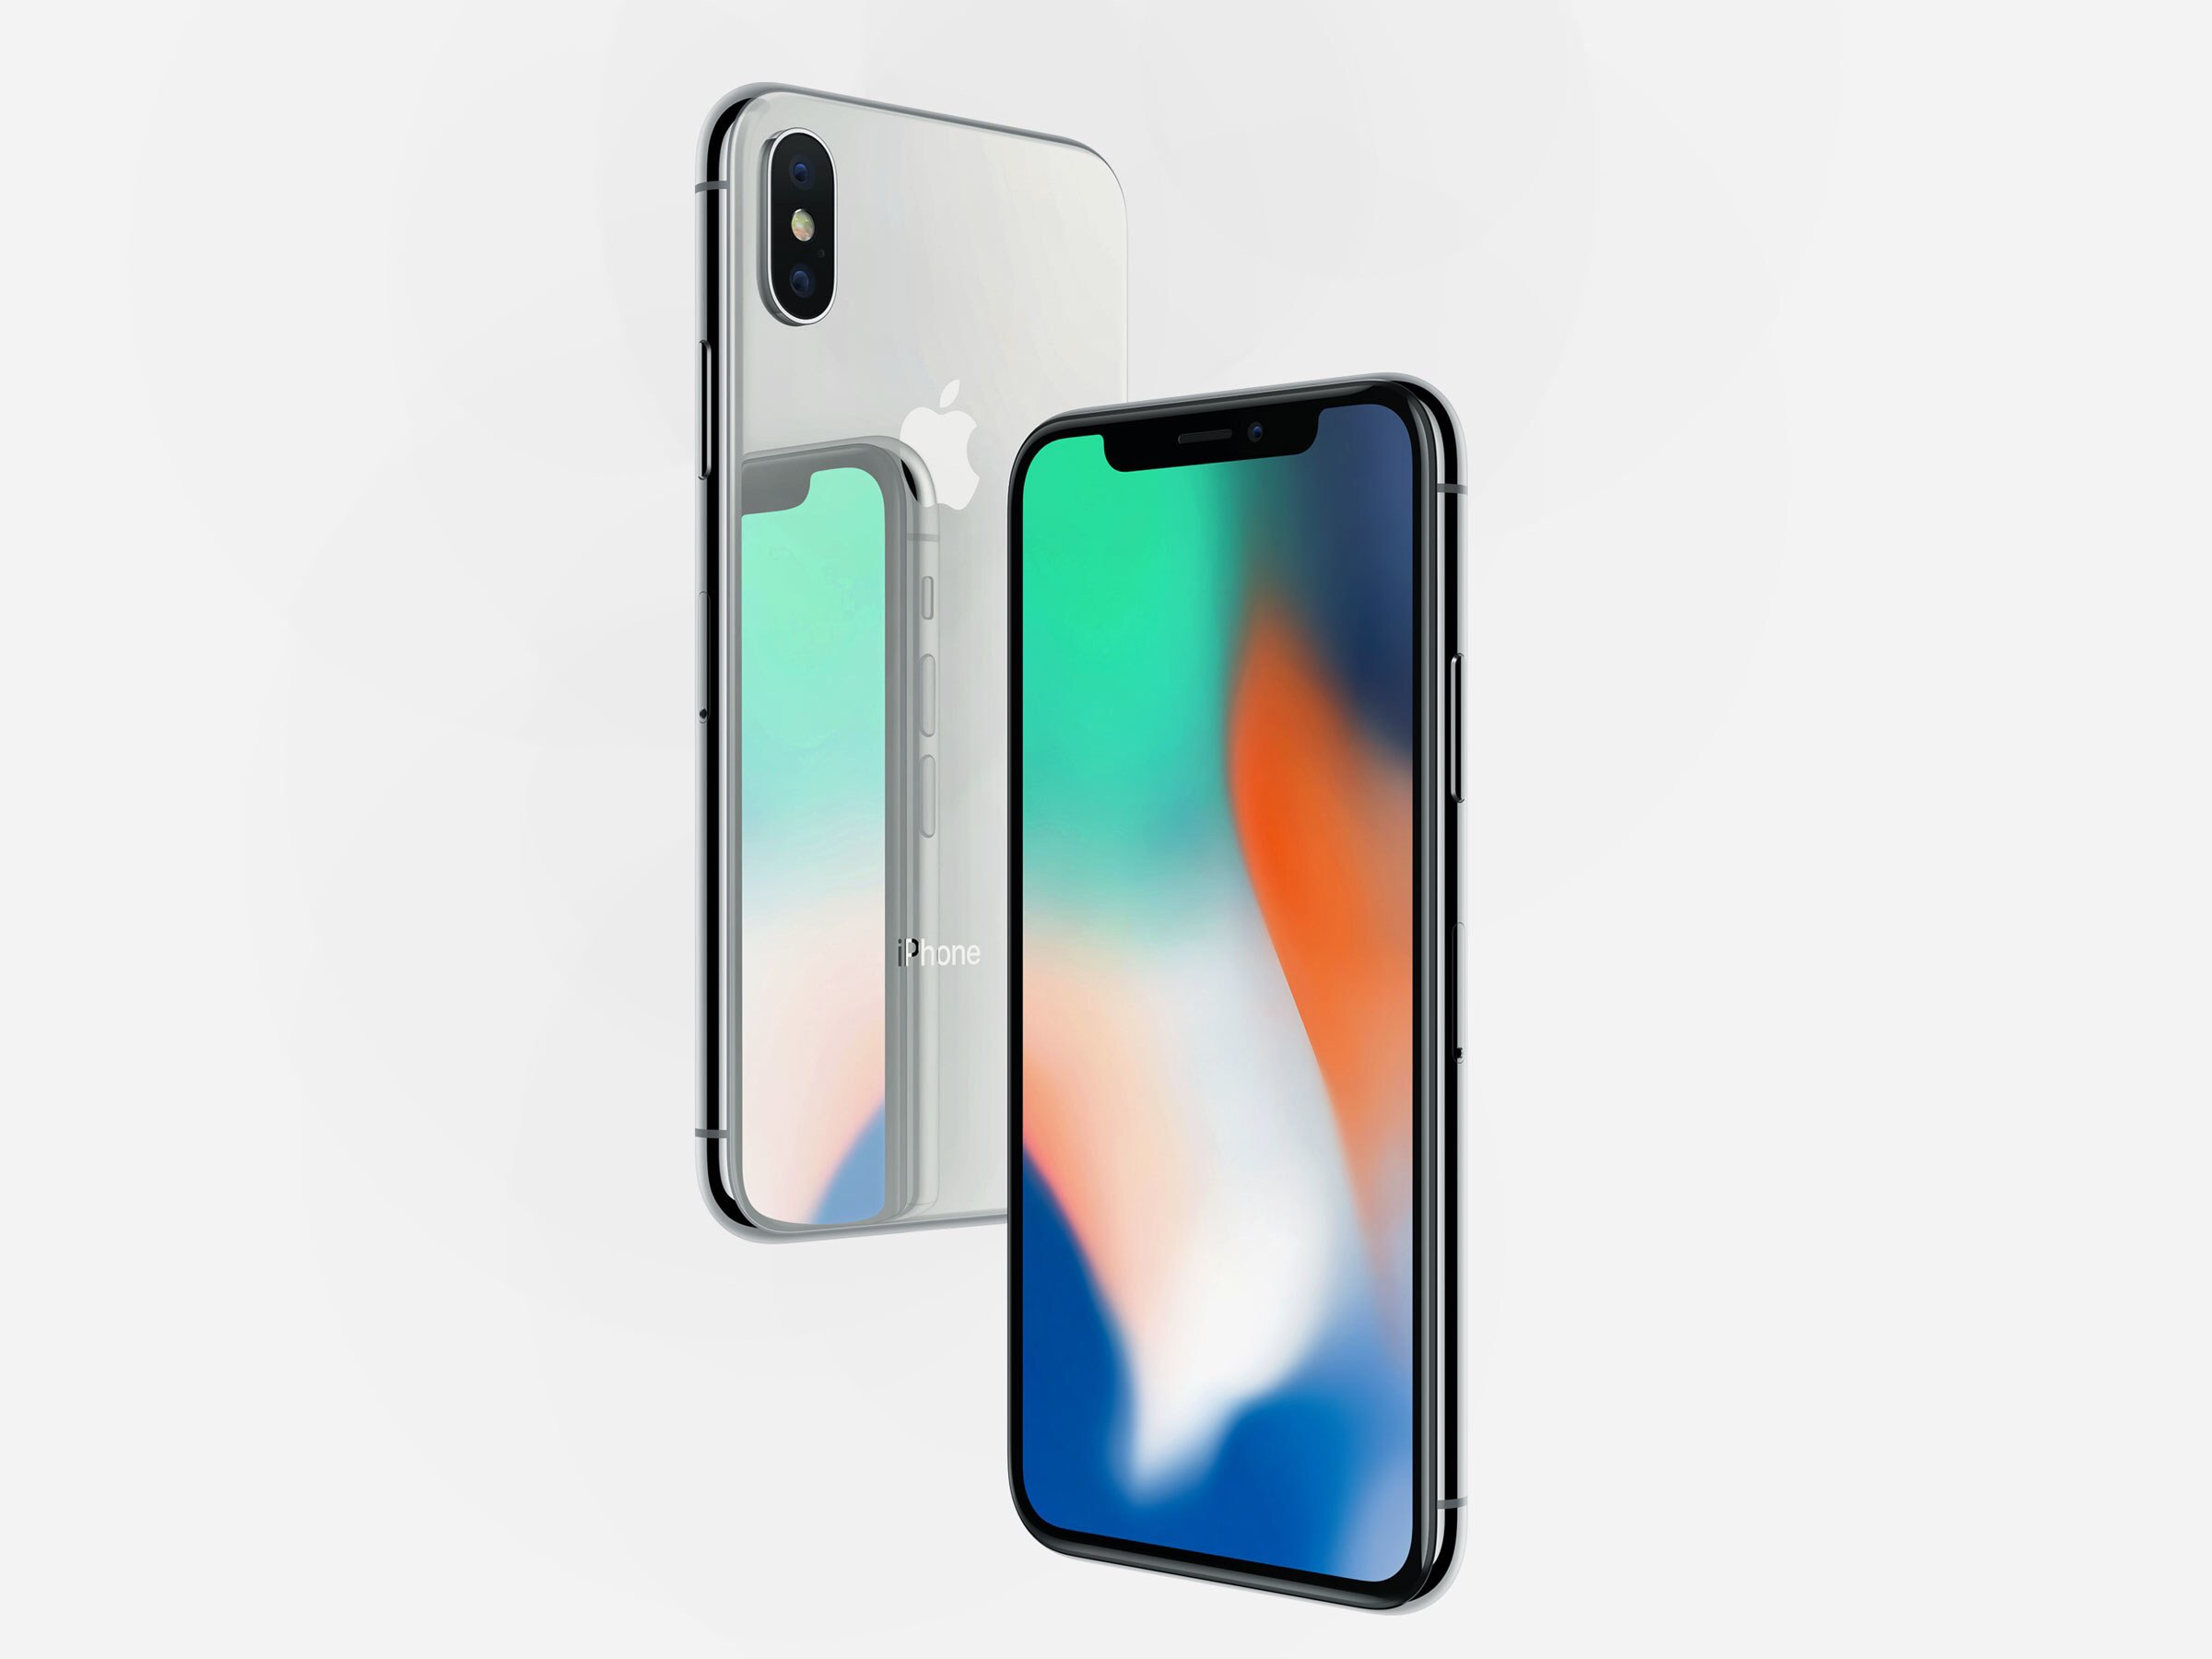 Prepping for Your iPhone X- AppleCare+